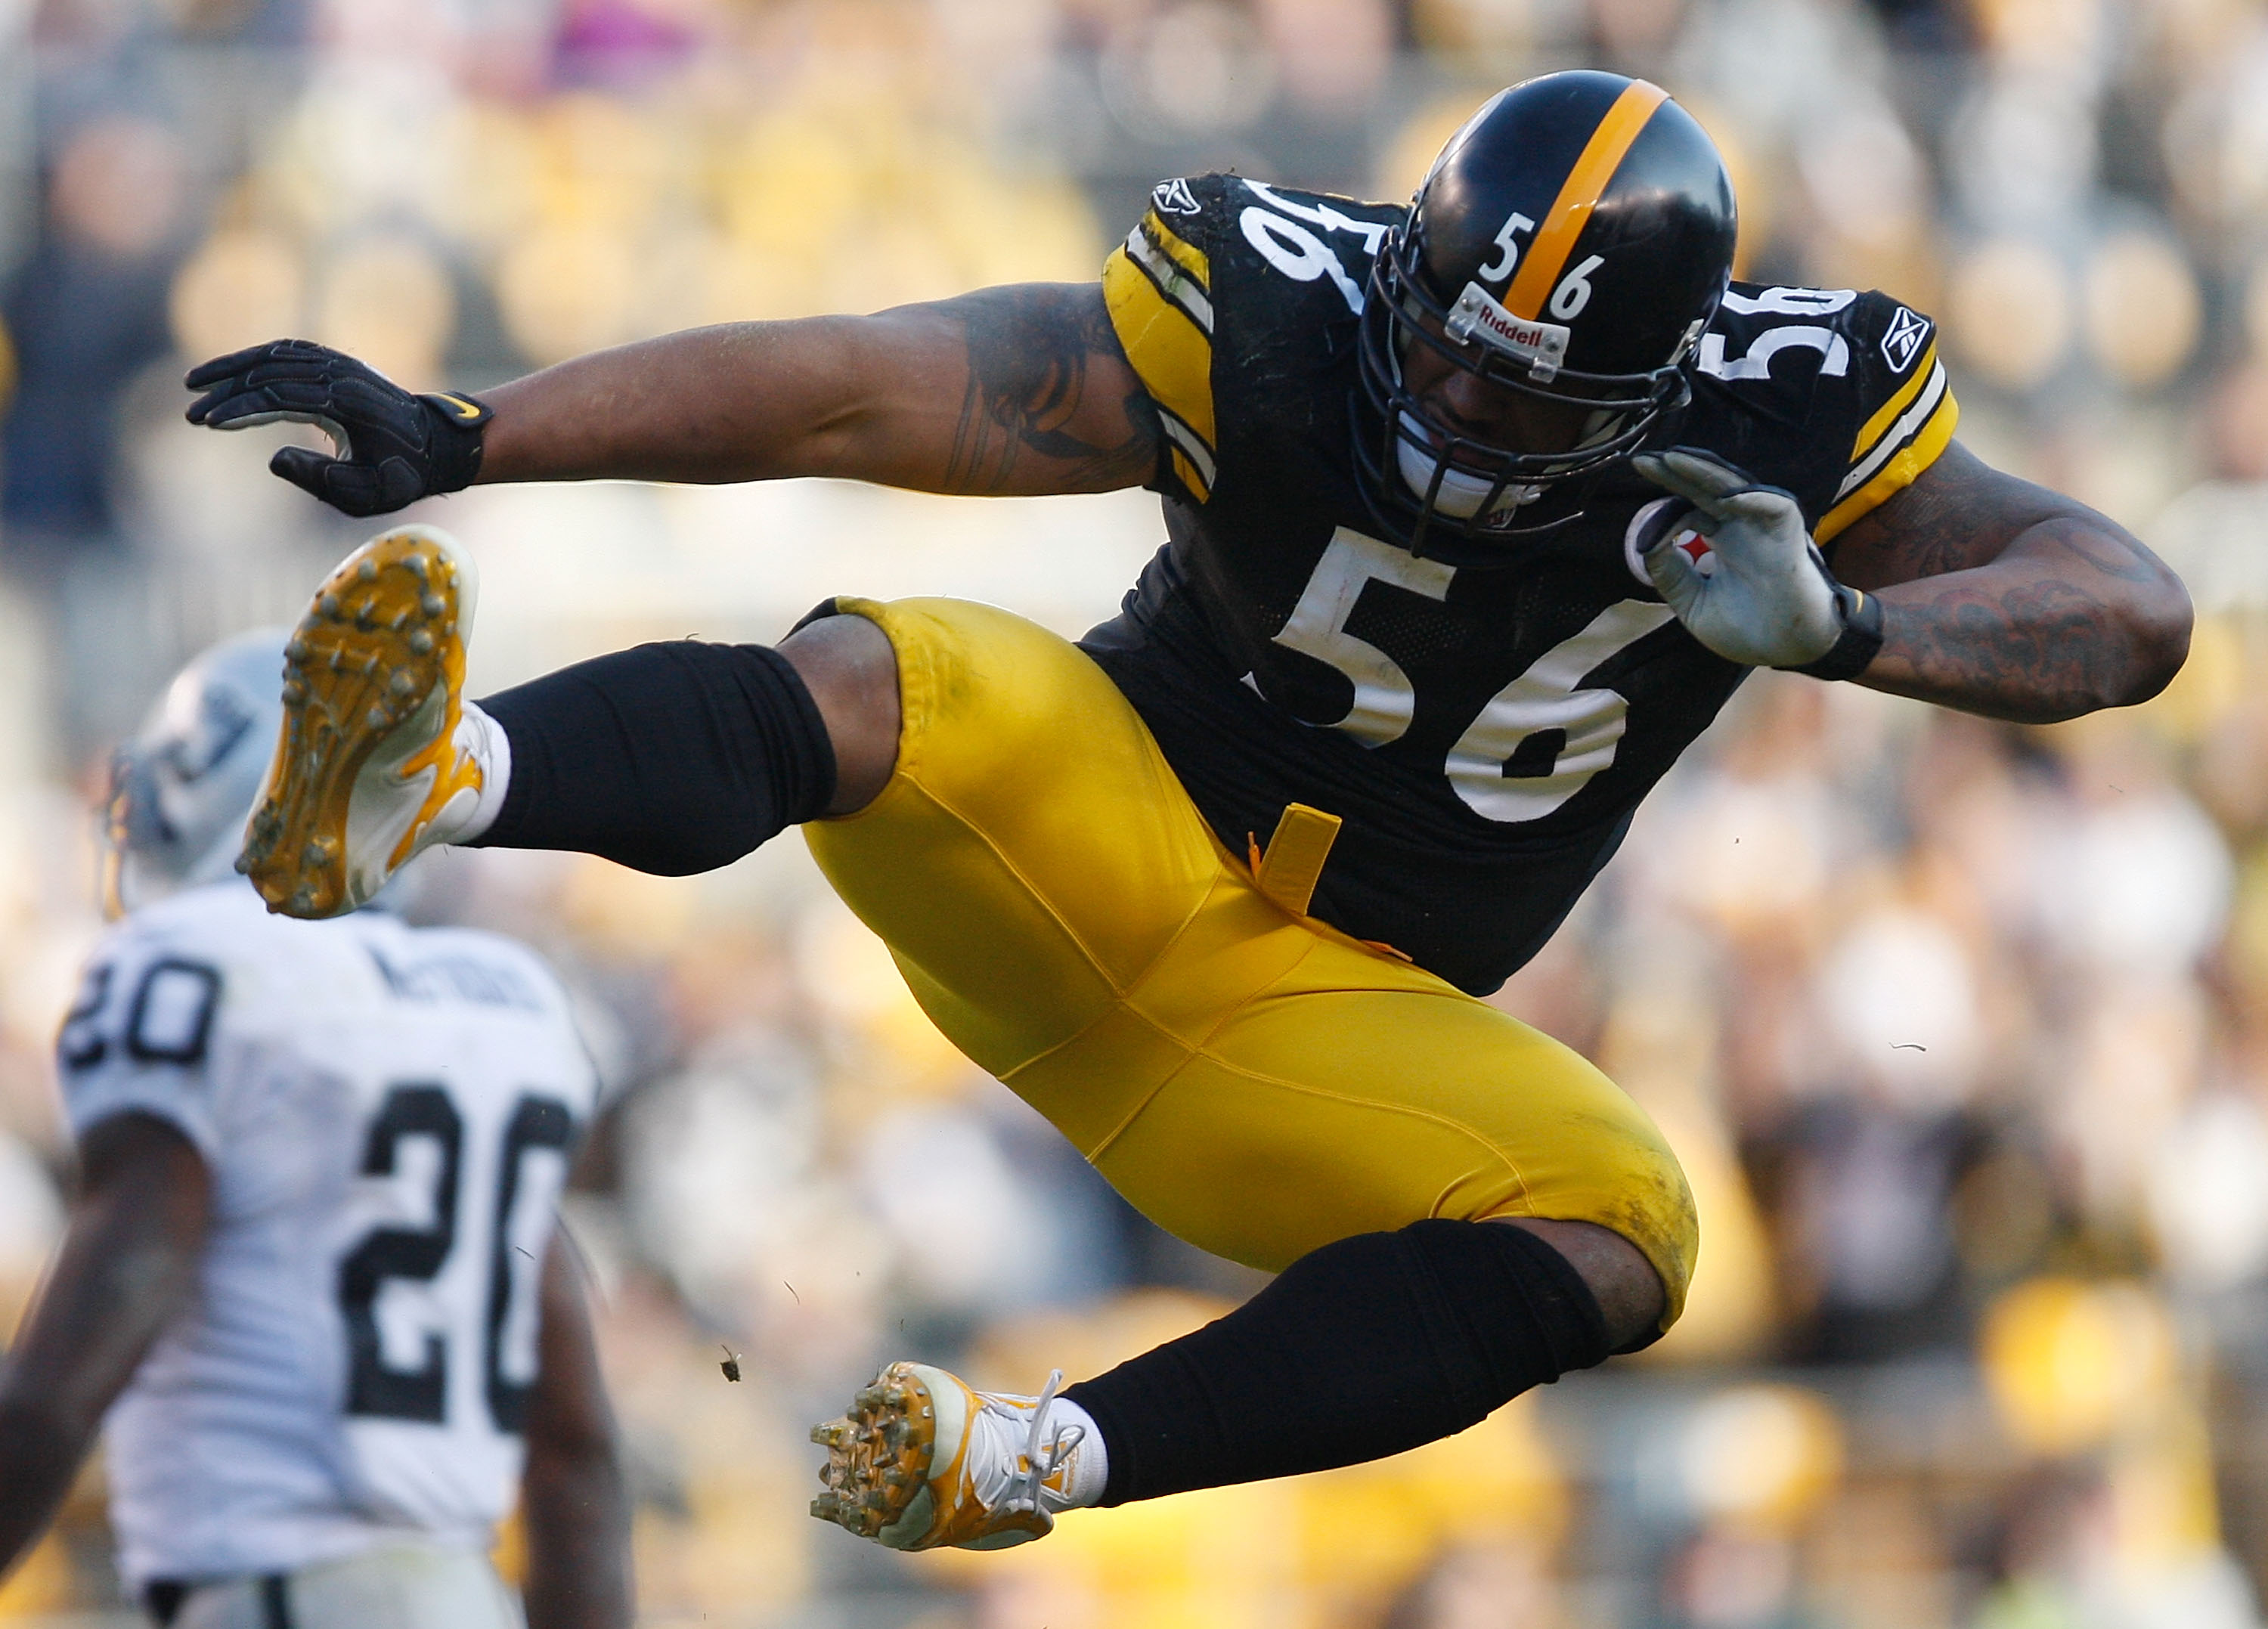 19bc4b826 PITTSBURGH - DECEMBER 6  LaMarr Woodley  56 of the Pittsburgh Steelers  celebrates after sacking